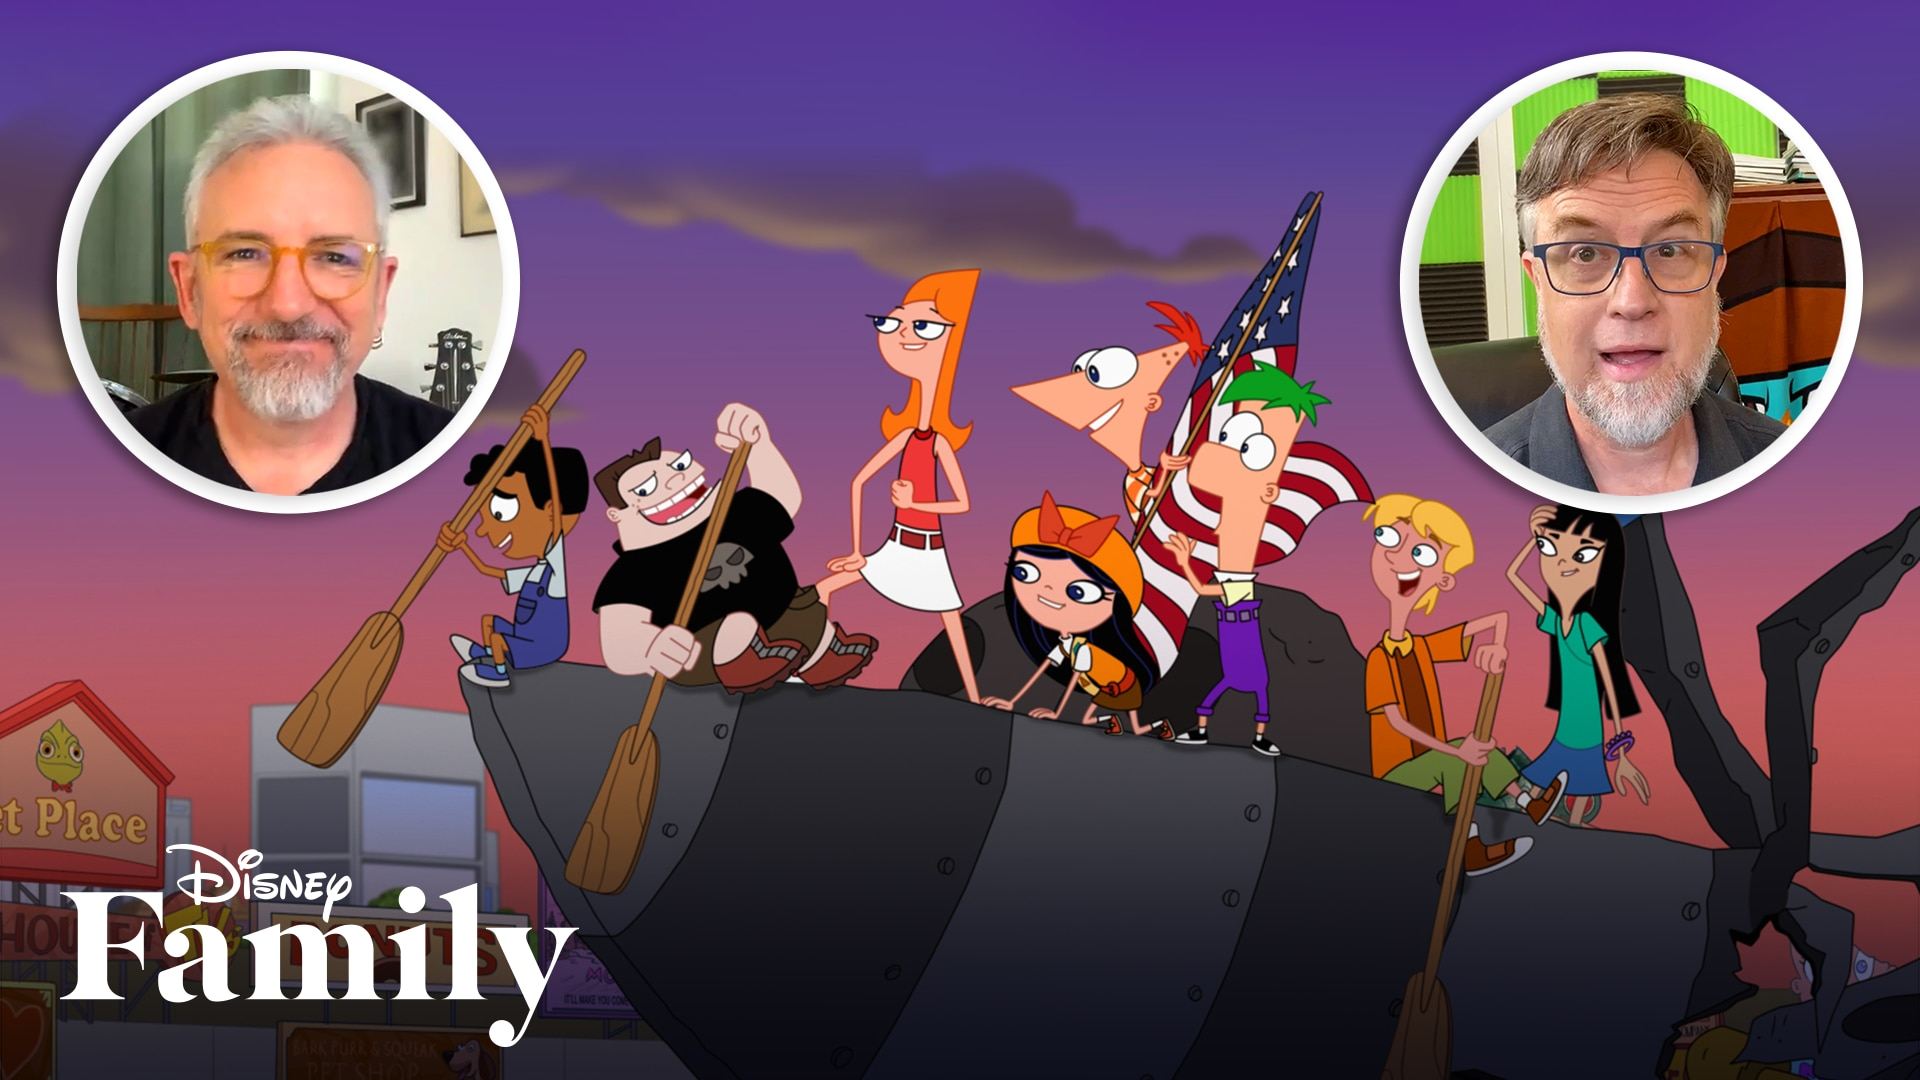 The Cast & Creators of Phineas and Ferb Explain the Phineas and Ferb Family Tree in 60 Seconds | Disney Family